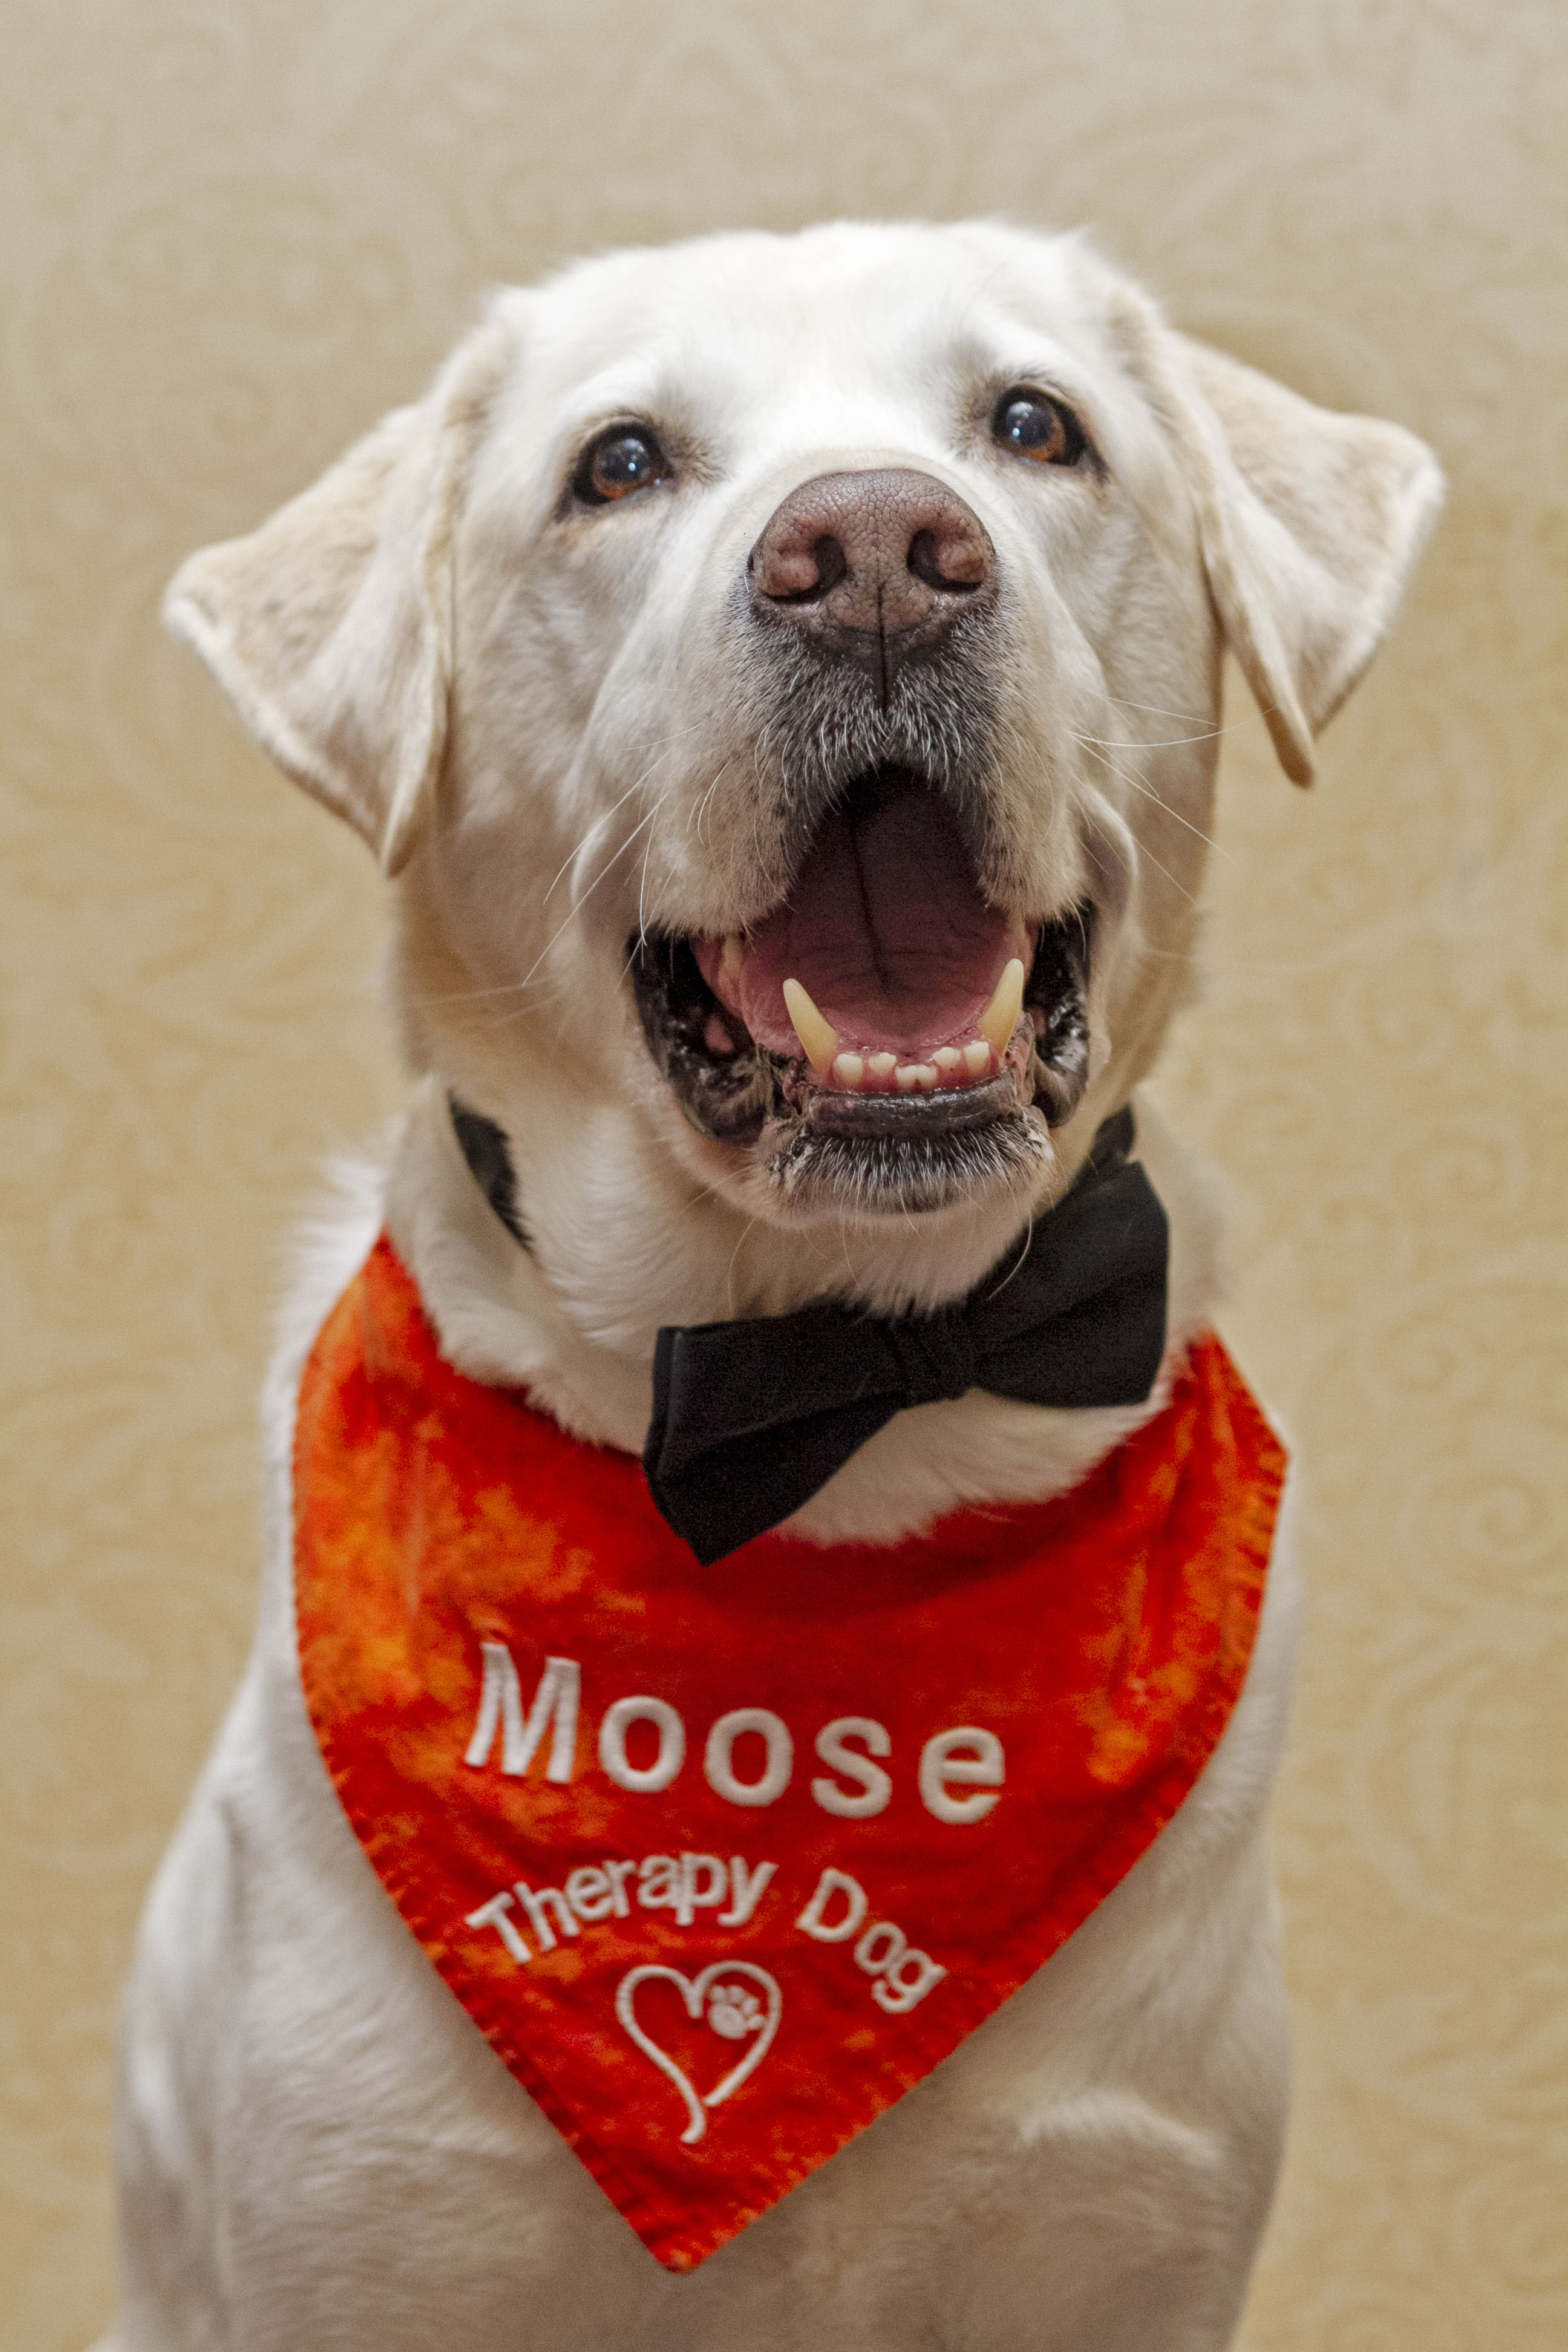 Moose Therapy Dog